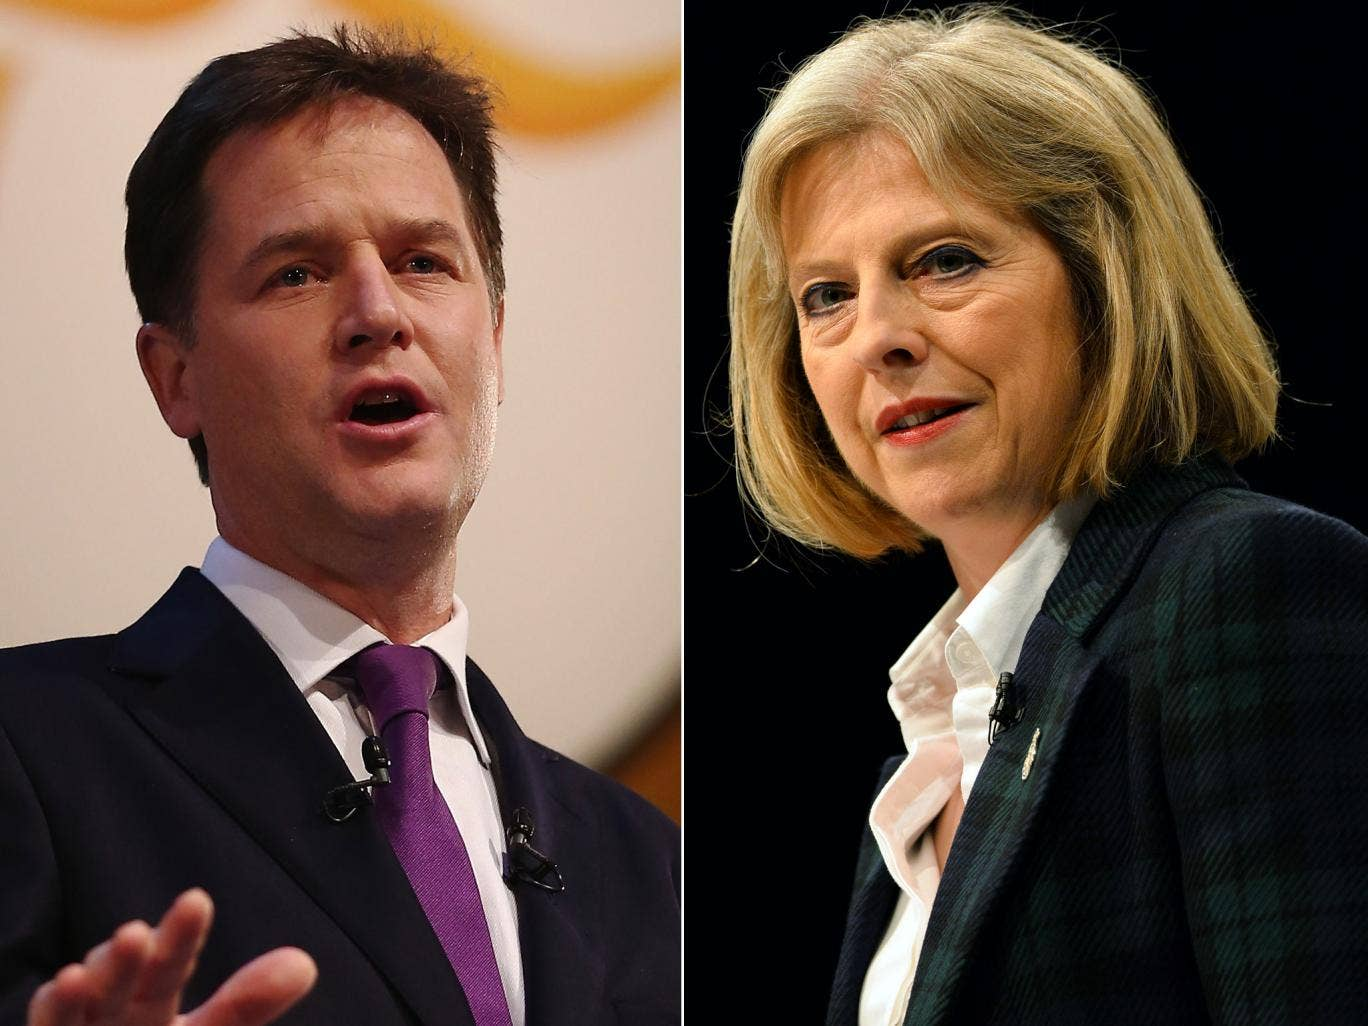 Nick Clegg has accused Theresa May of 'illegal' plans to limit EU migrants